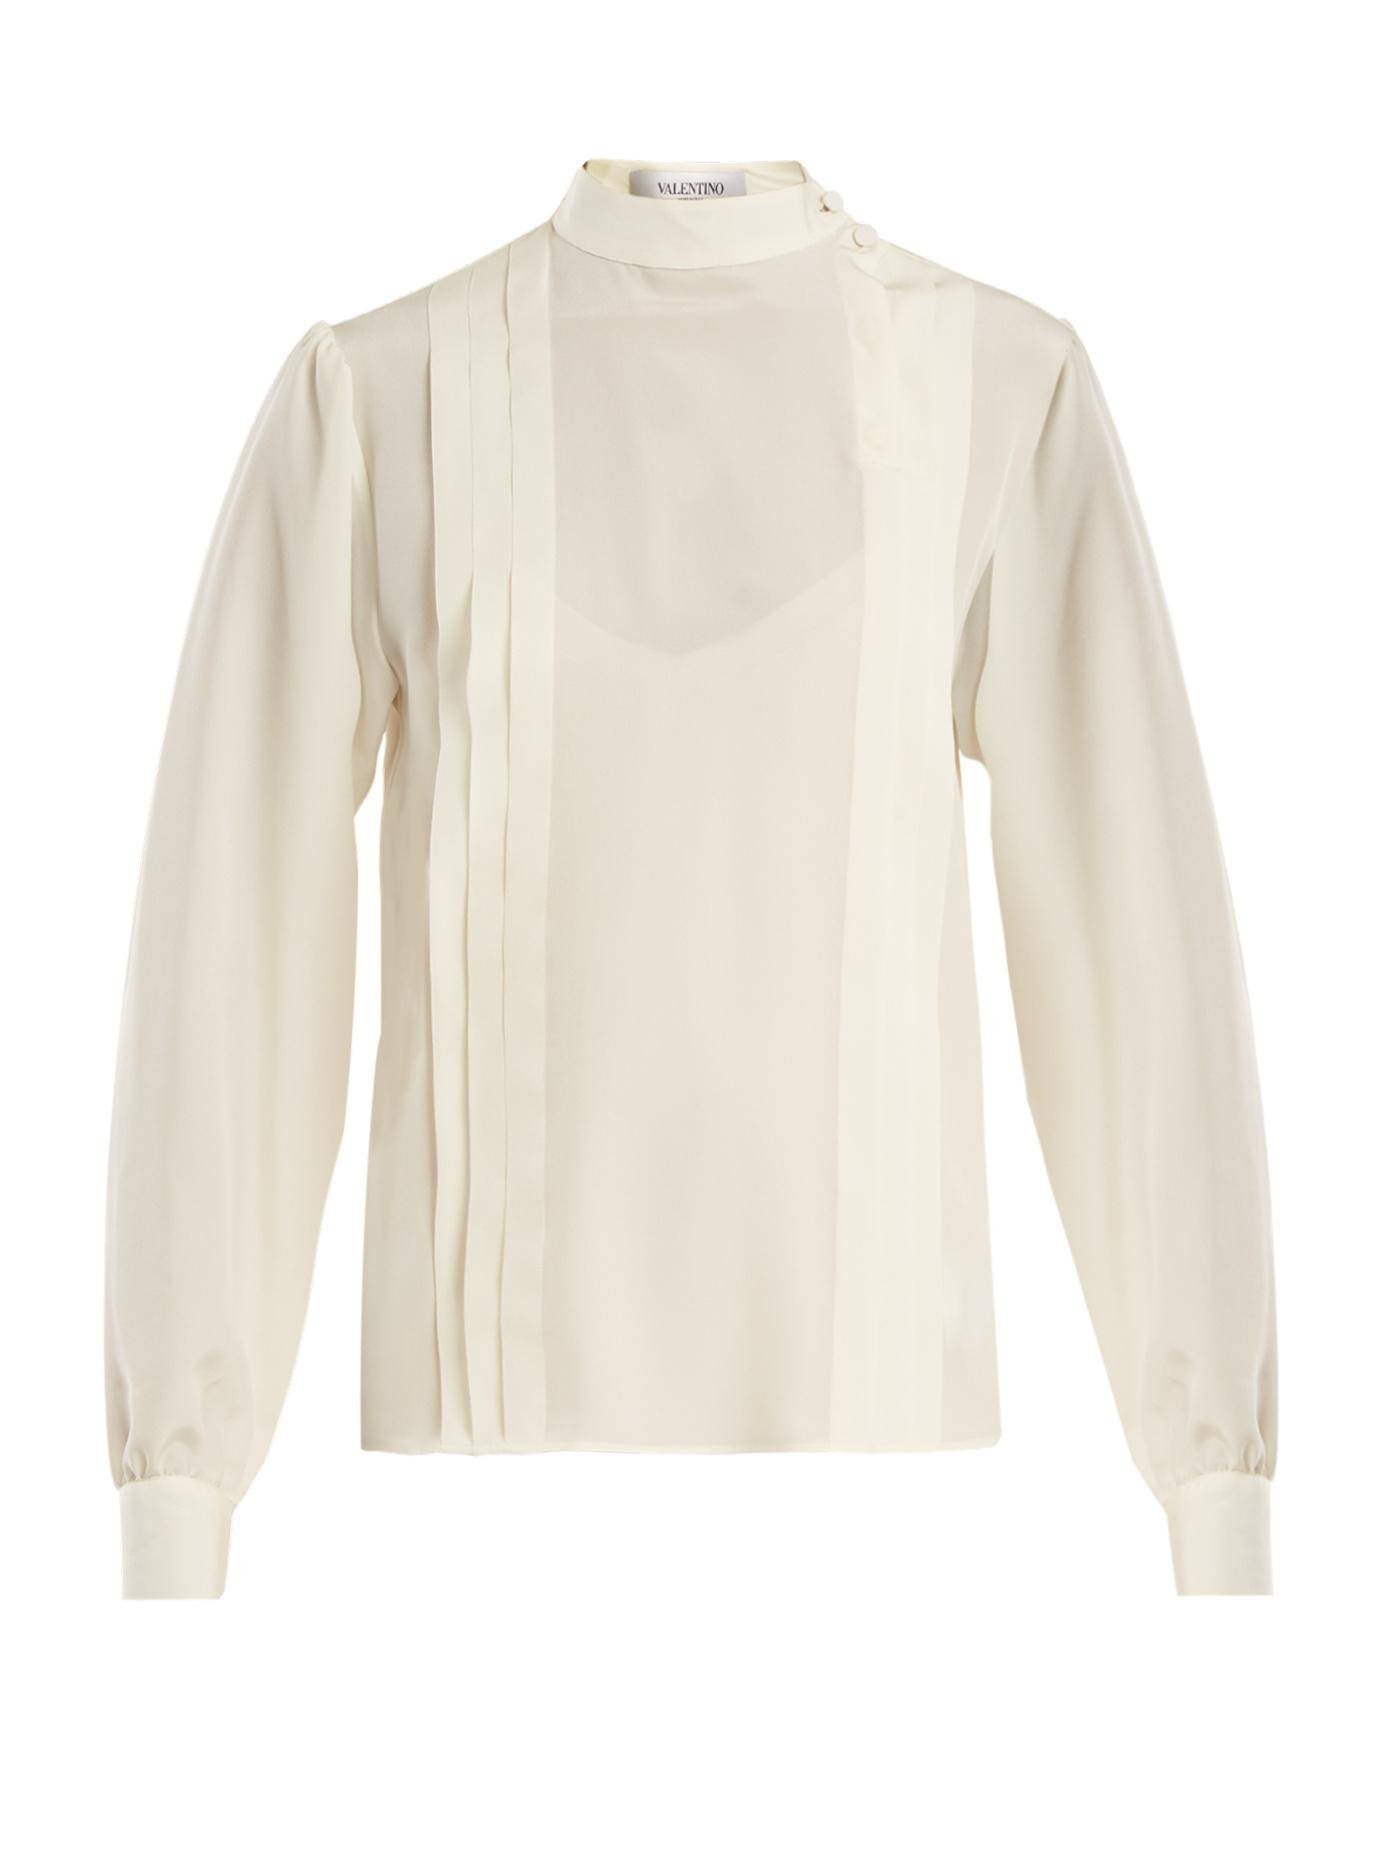 Buy Online Cheap pleated blouse - White Valentino Buy Cheap Popular Sale Wholesale Price For Cheap 5UdRLtQp